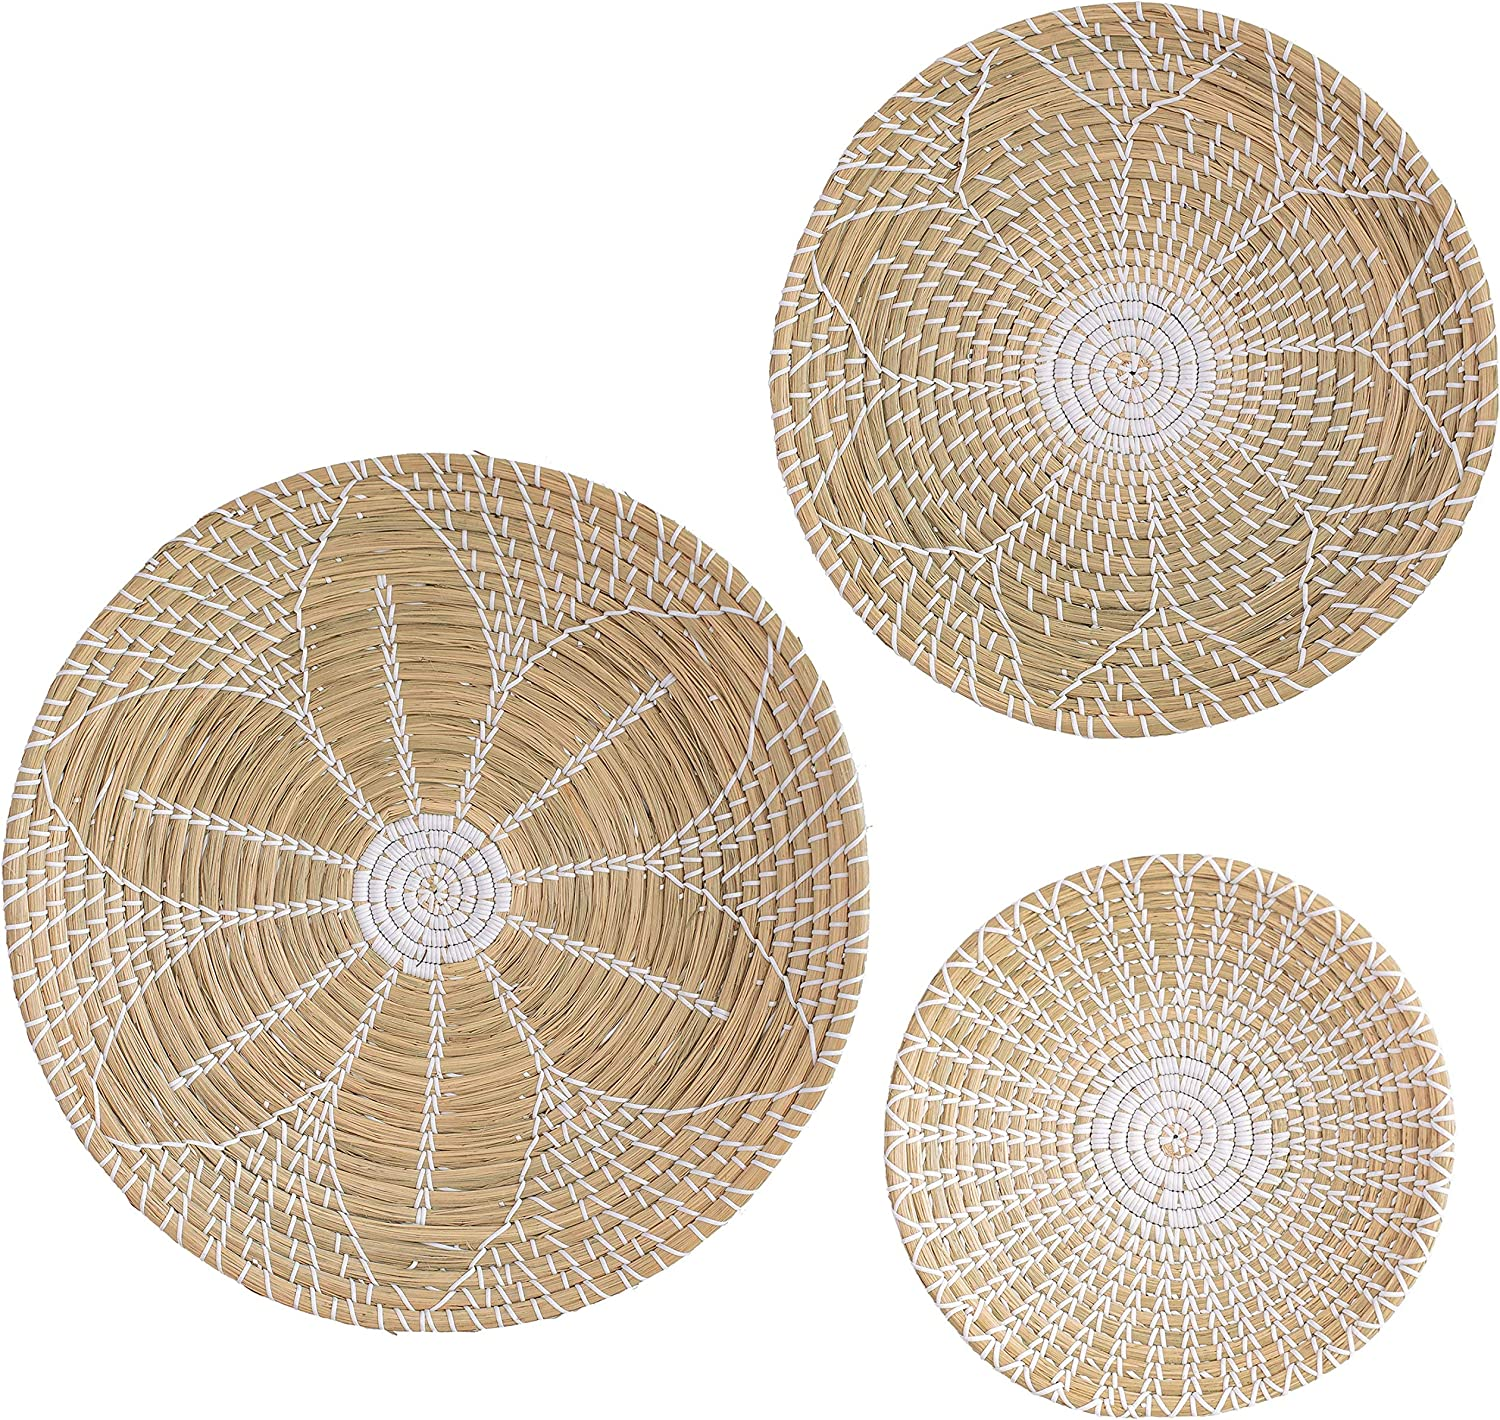 Artera Wicker Wall Basket Decor - Set of 3 Hanging Woven Seagrass Flat Baskets, Round Boho Wall Basket Decor for Living Room or Bedroom, Unique Wall Art